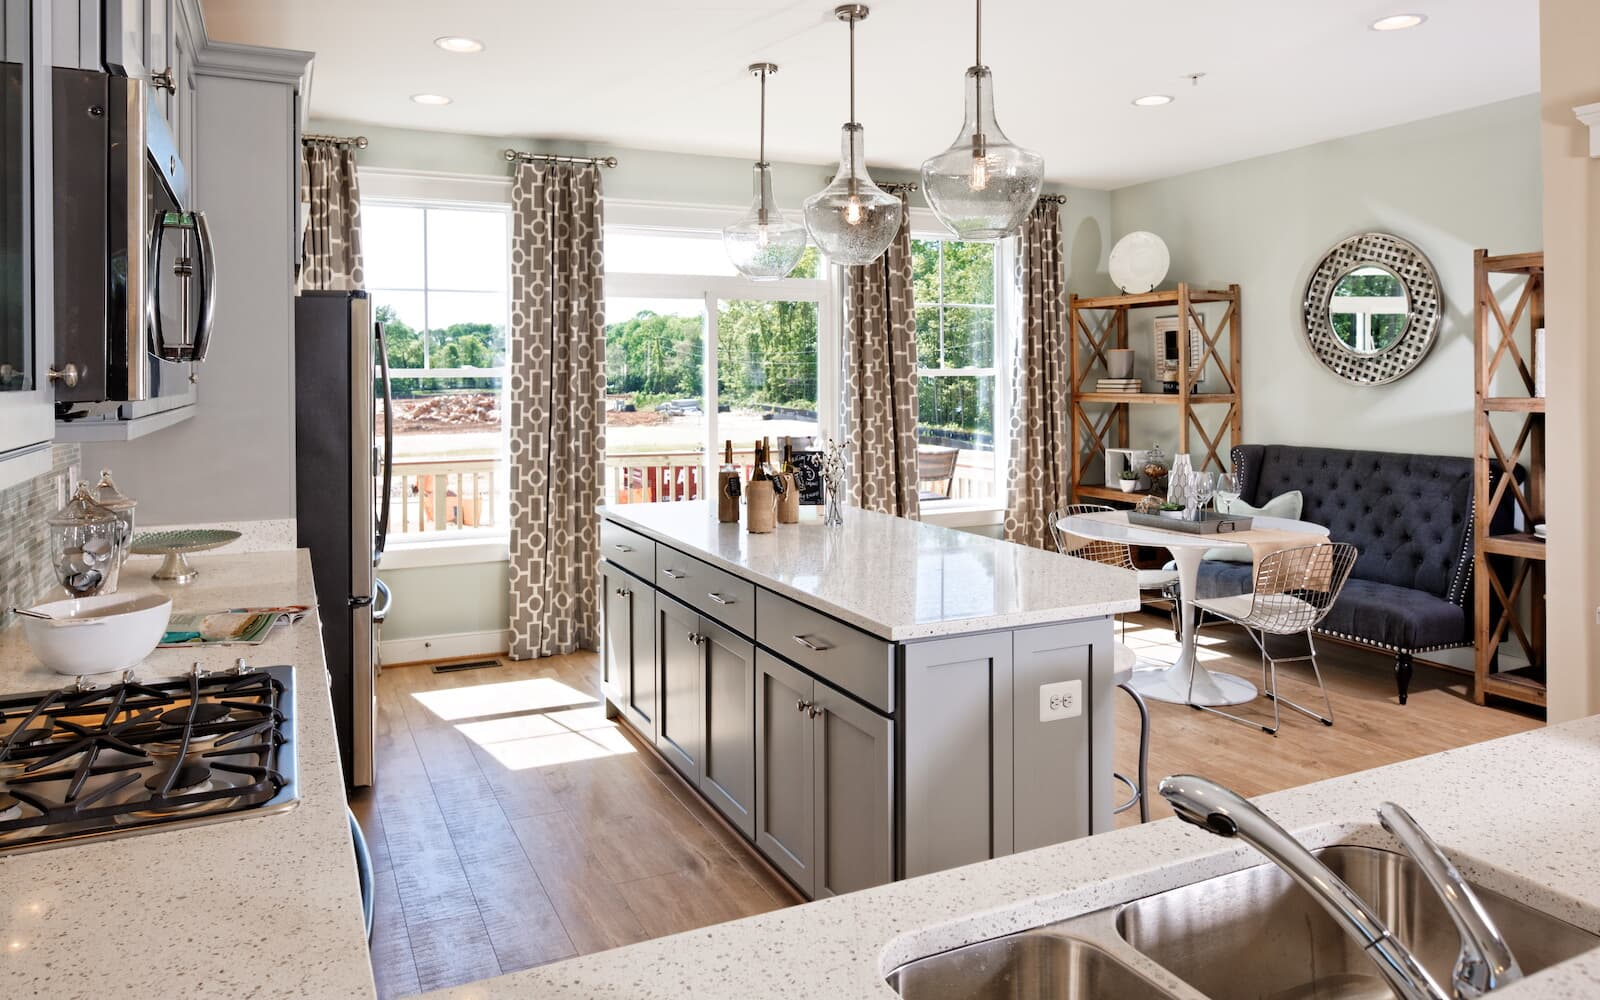 CamdenII-kitchen-townhomes-north-potomac-md-travilah-station-brookfield-residential